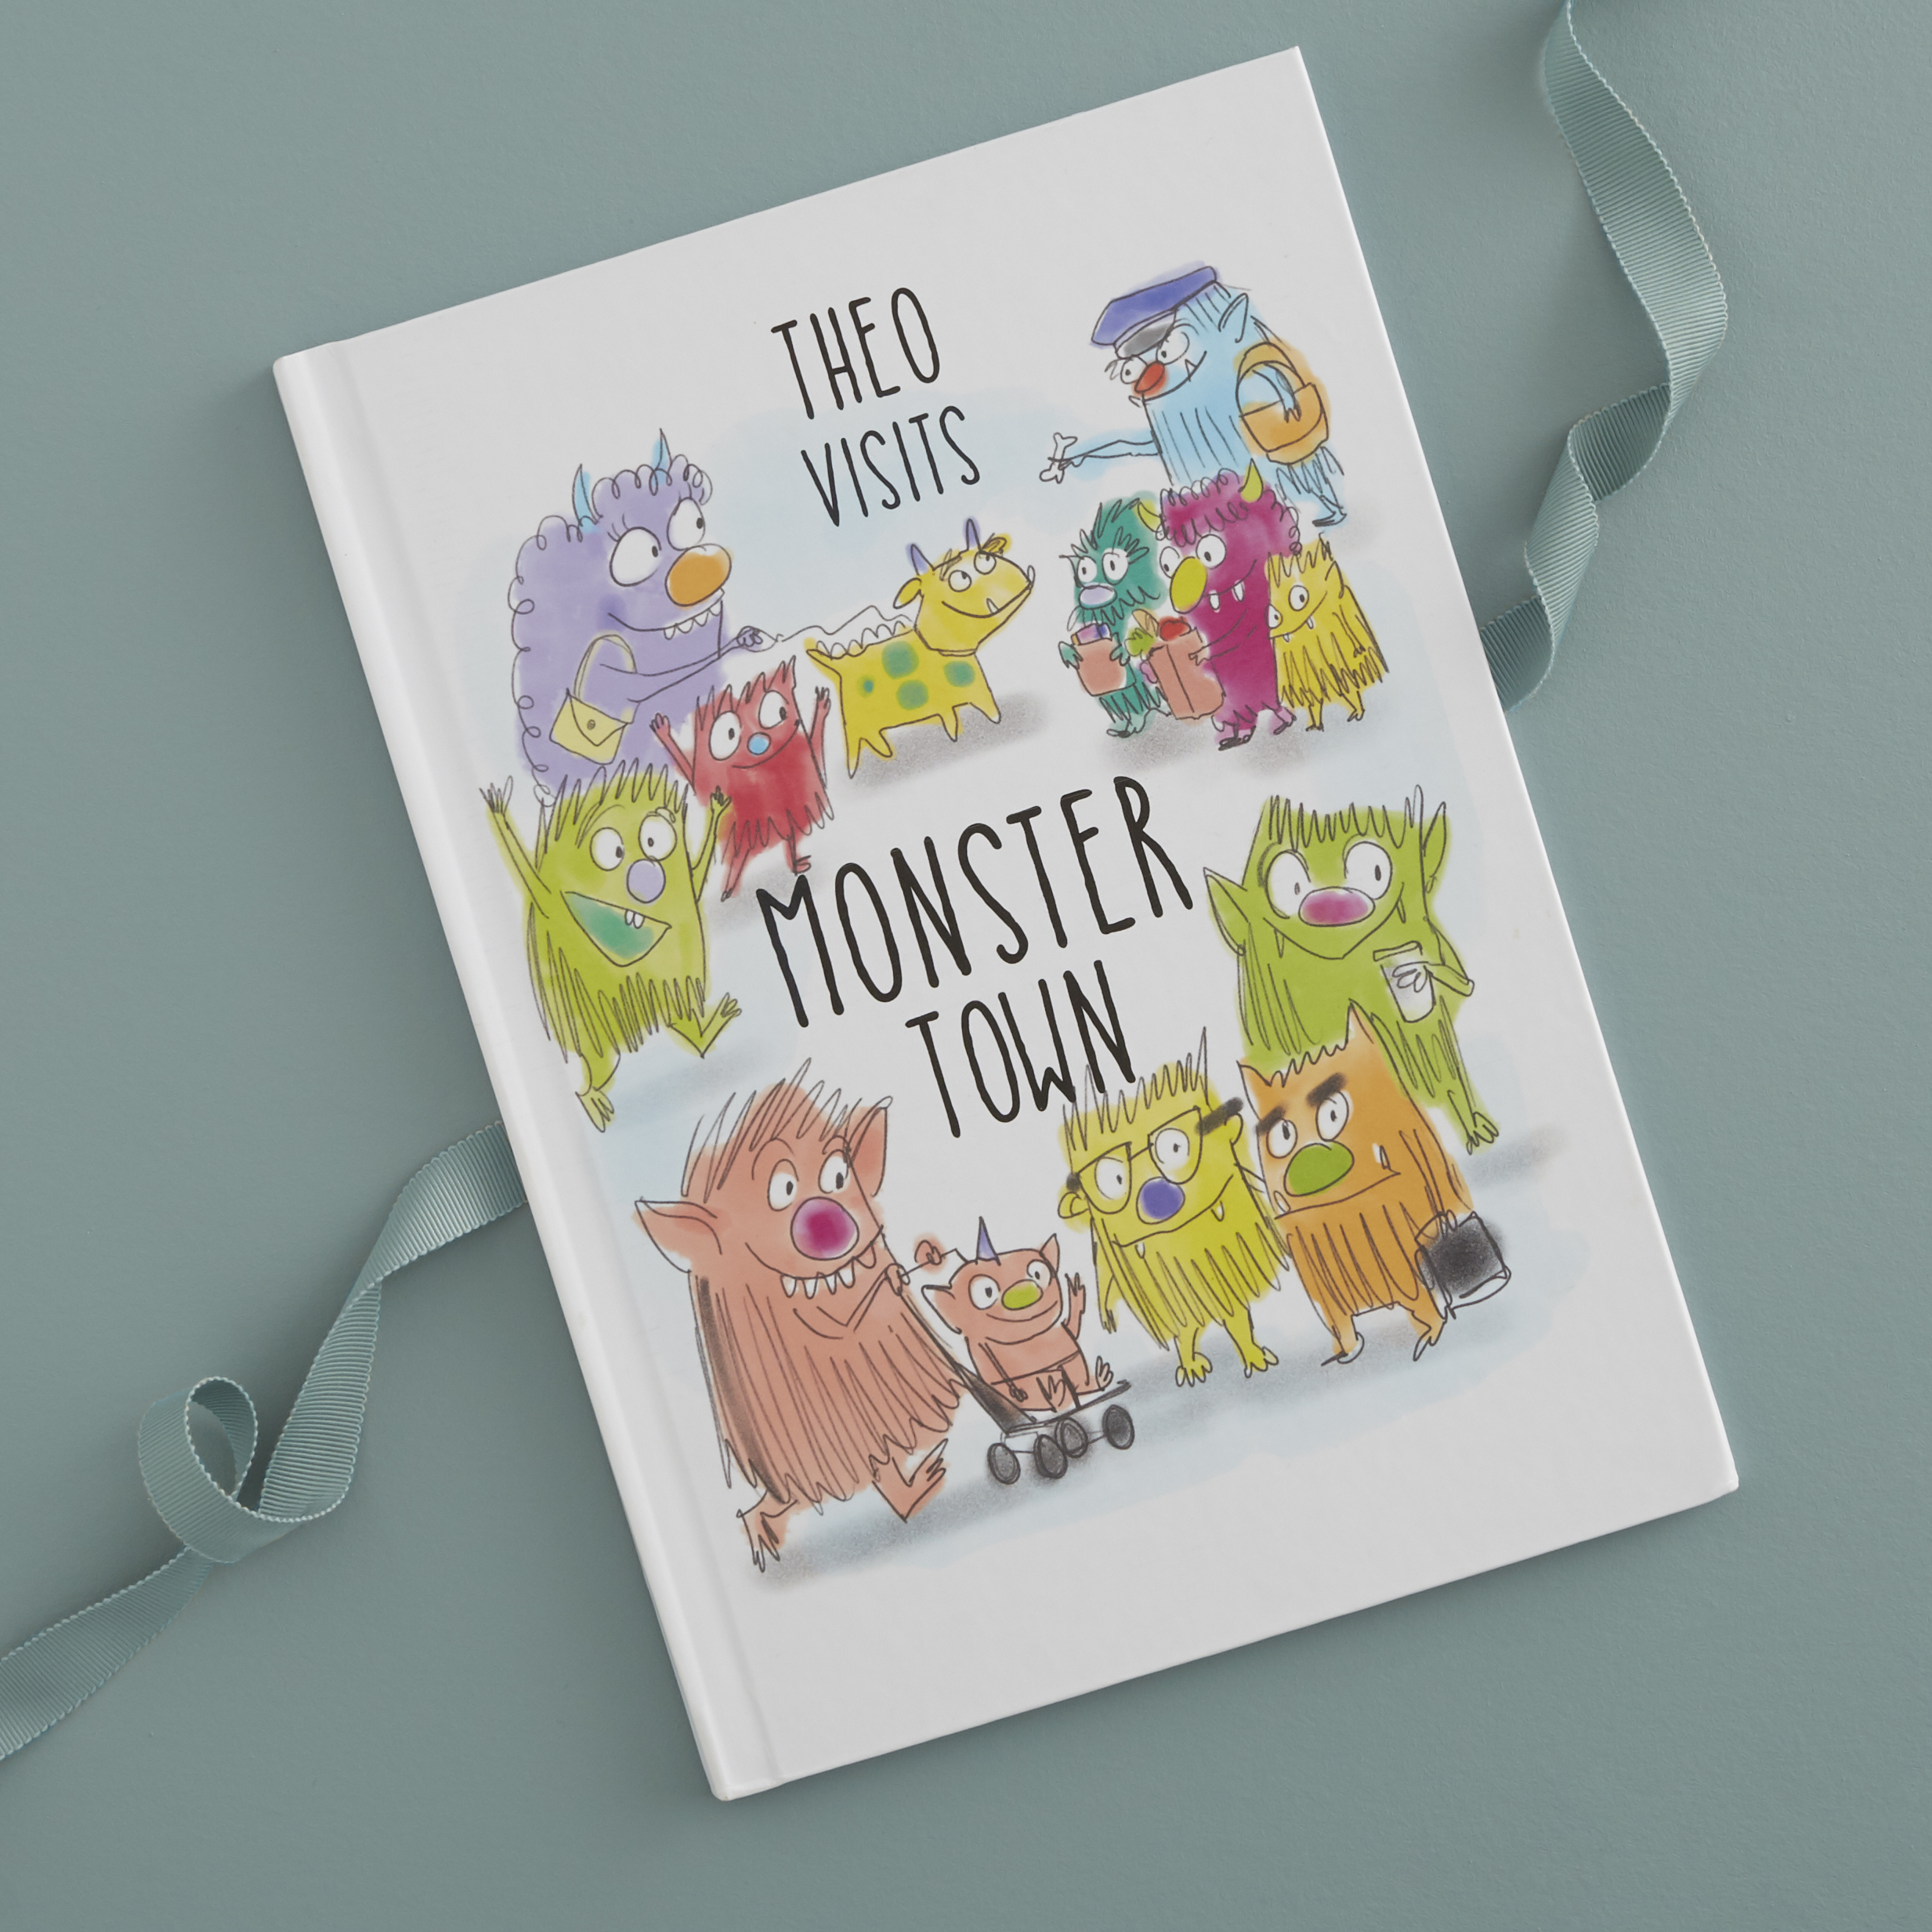 Personalized Monster Town Adventure Book